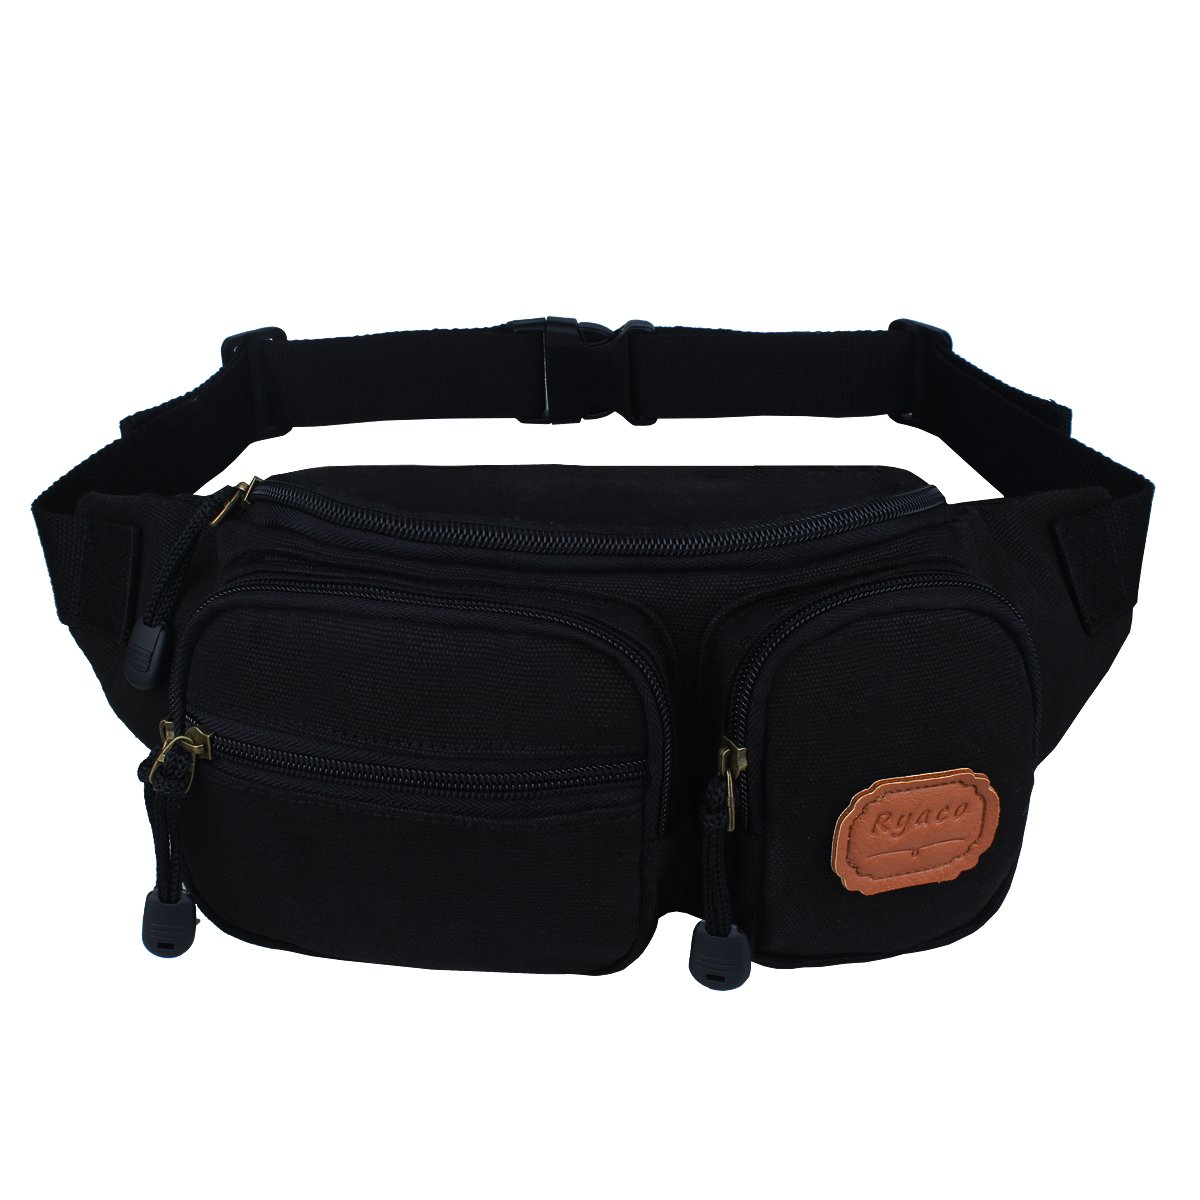 Ryaco [Canvas] R906 Waist Pack, Outdoor Sports Waist Bag, Bum bag, Fanny Pack, Workout Pouch - Hiking 90WP-CPULL-6BR